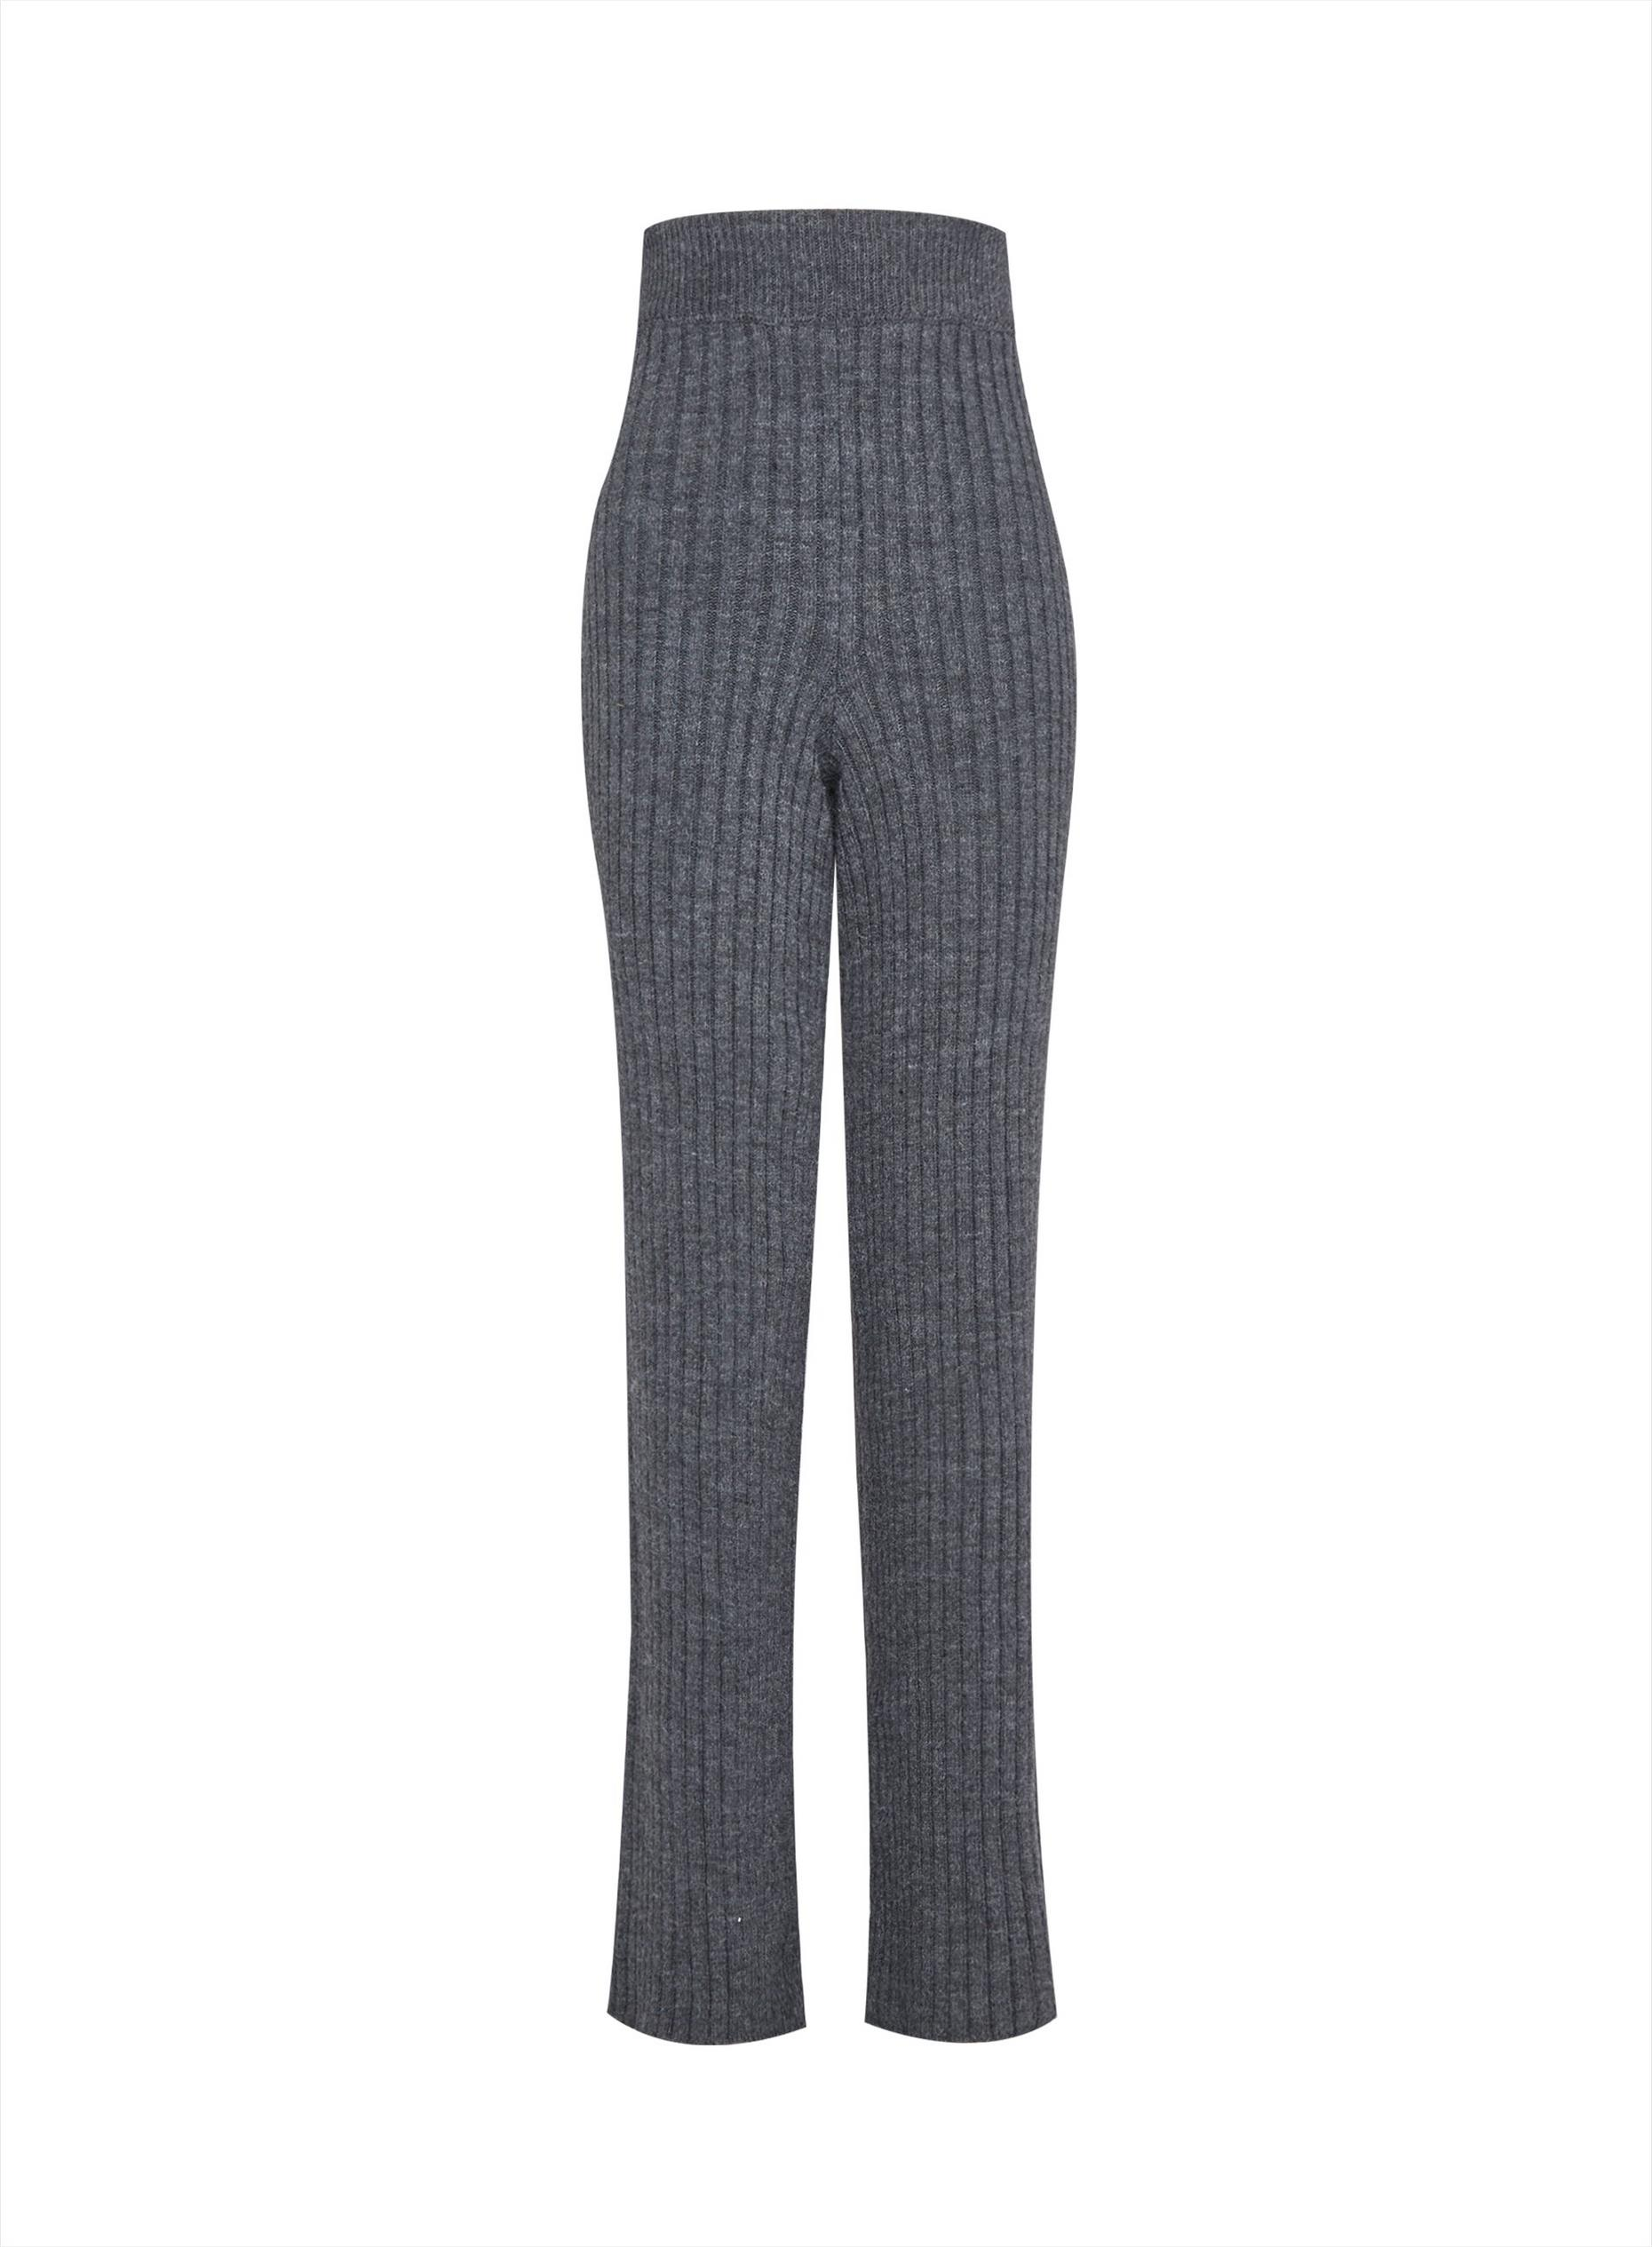 Tall Charcoal Wide Leg Lounge Trousers